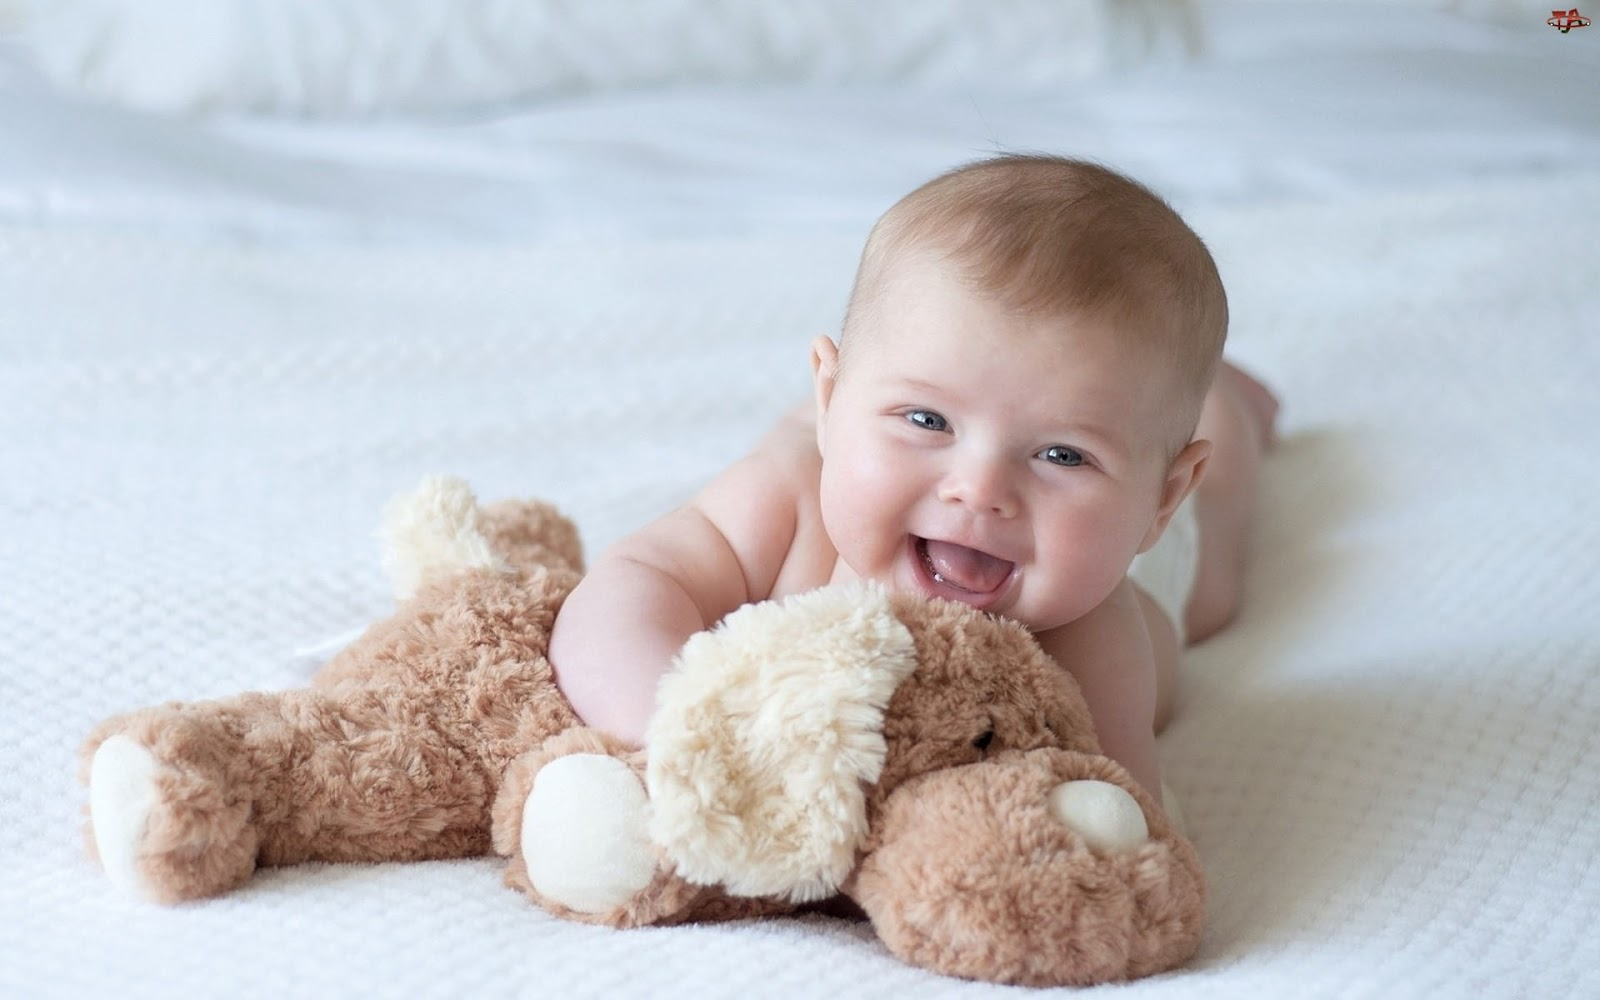 cute baby boy images download for mobile